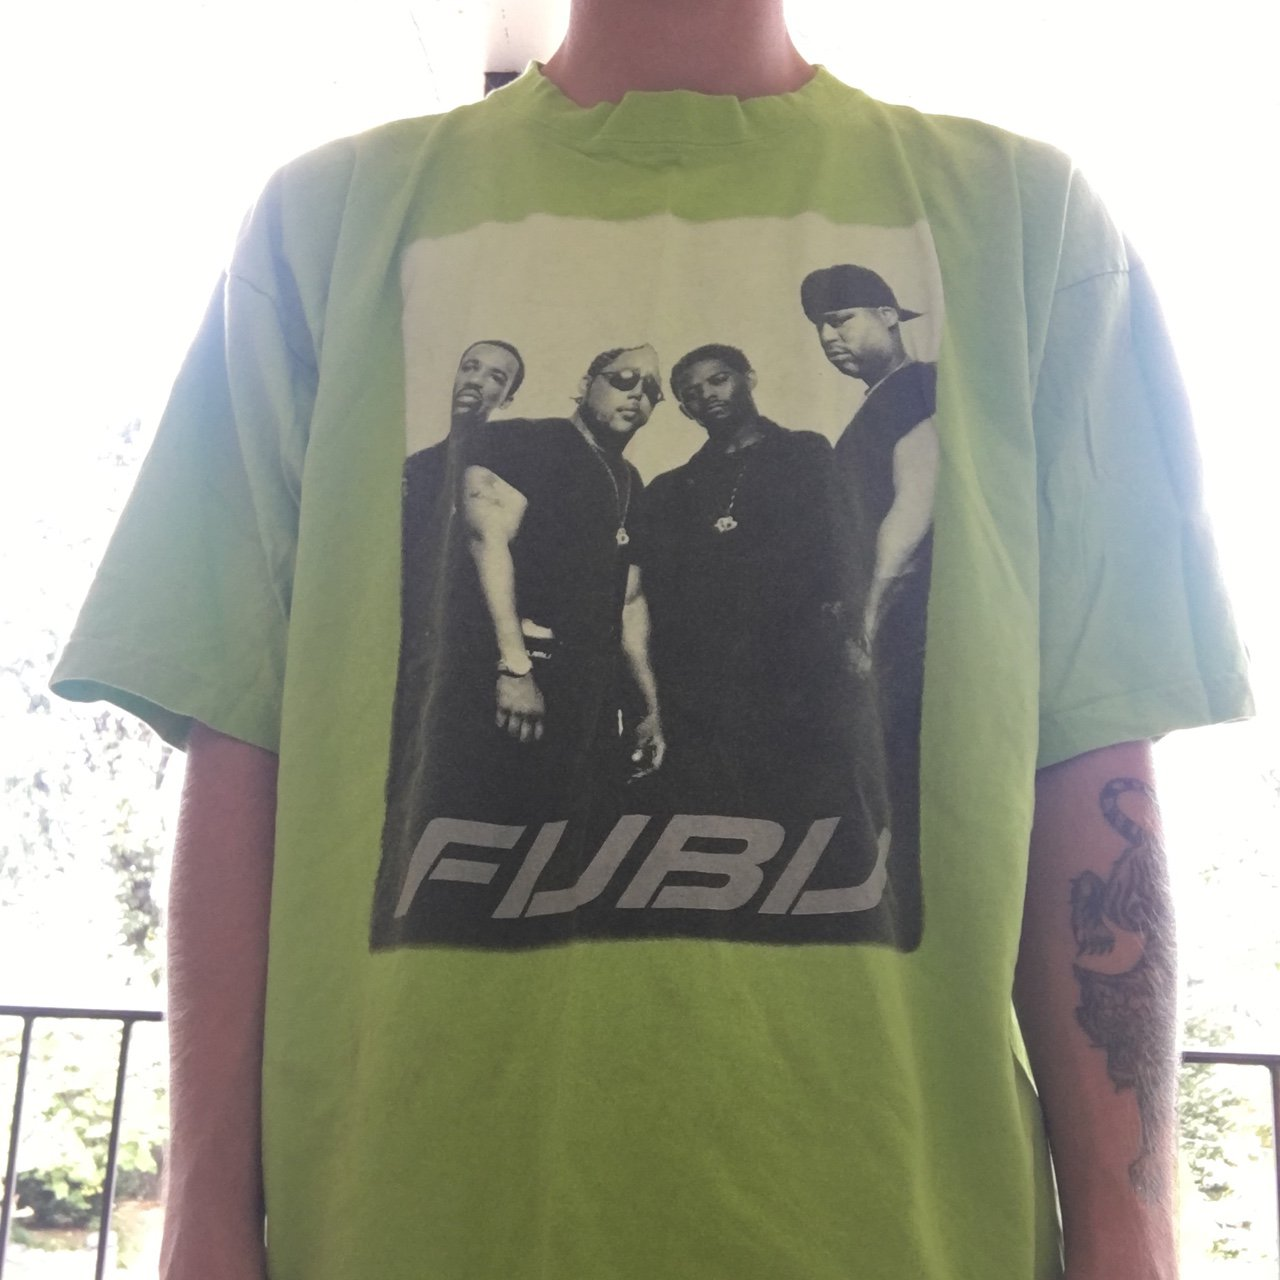 8ccf2ed724c6 ... vintage fubu shirt tag says size big but it fits like an on depop ...